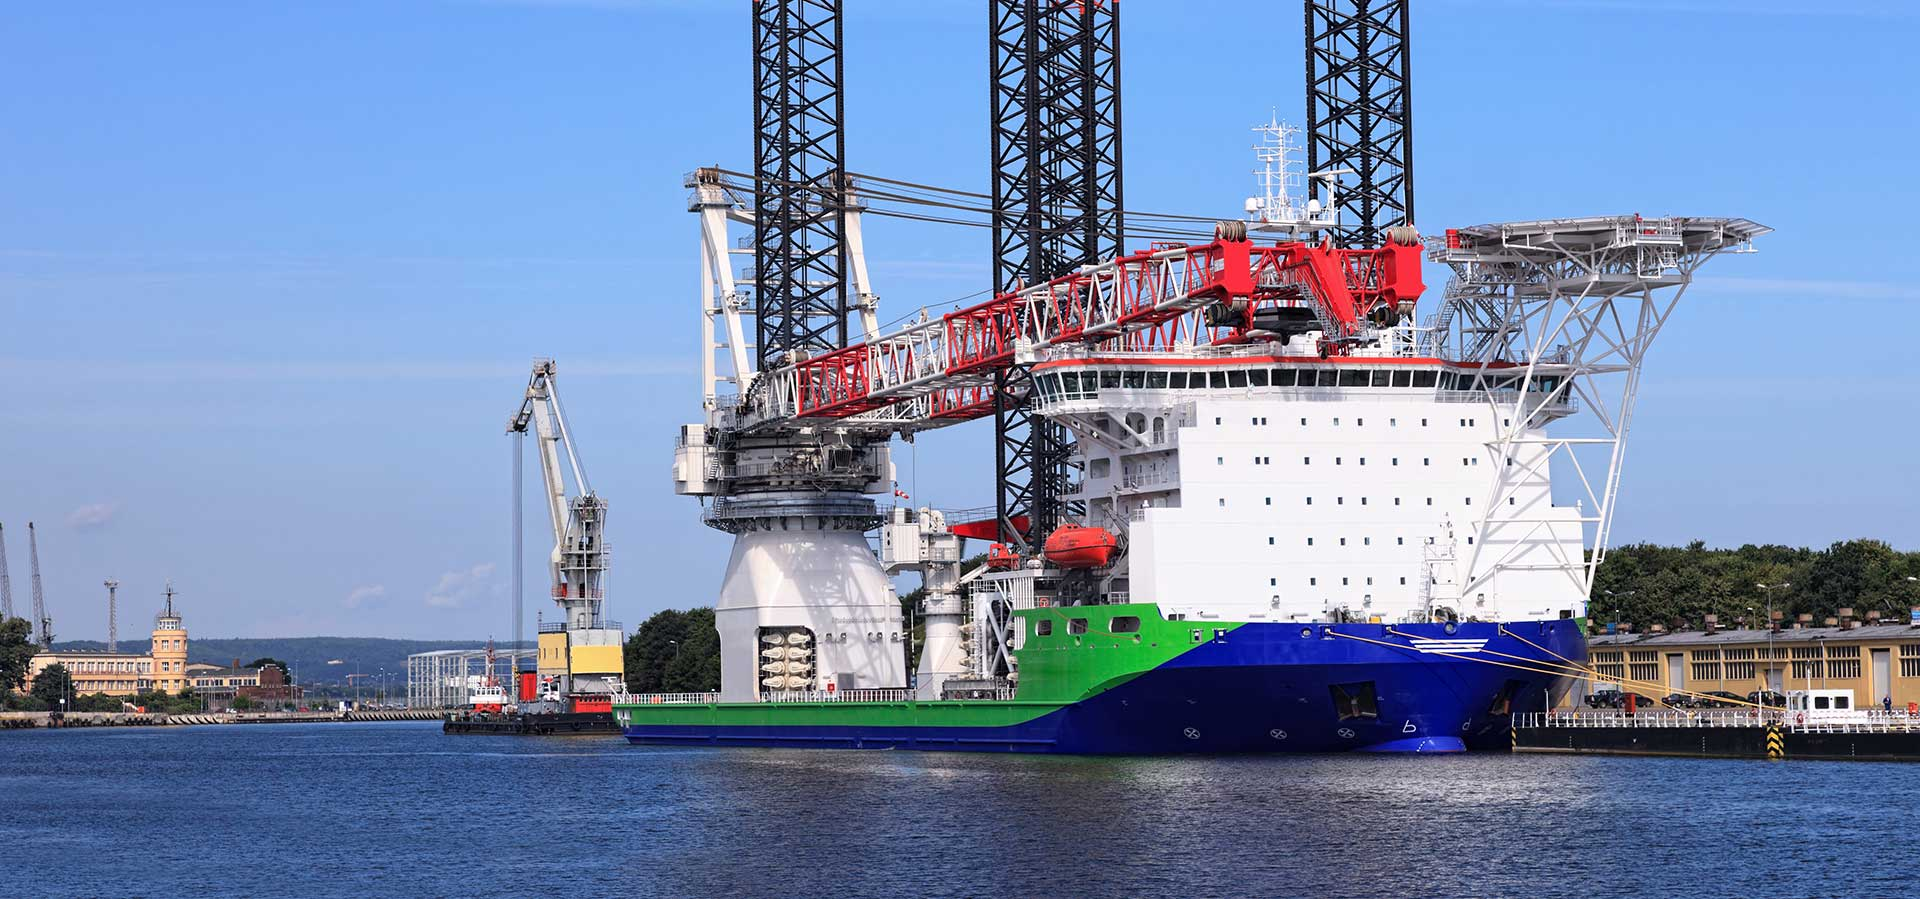 heavy lift wind turbine ship image